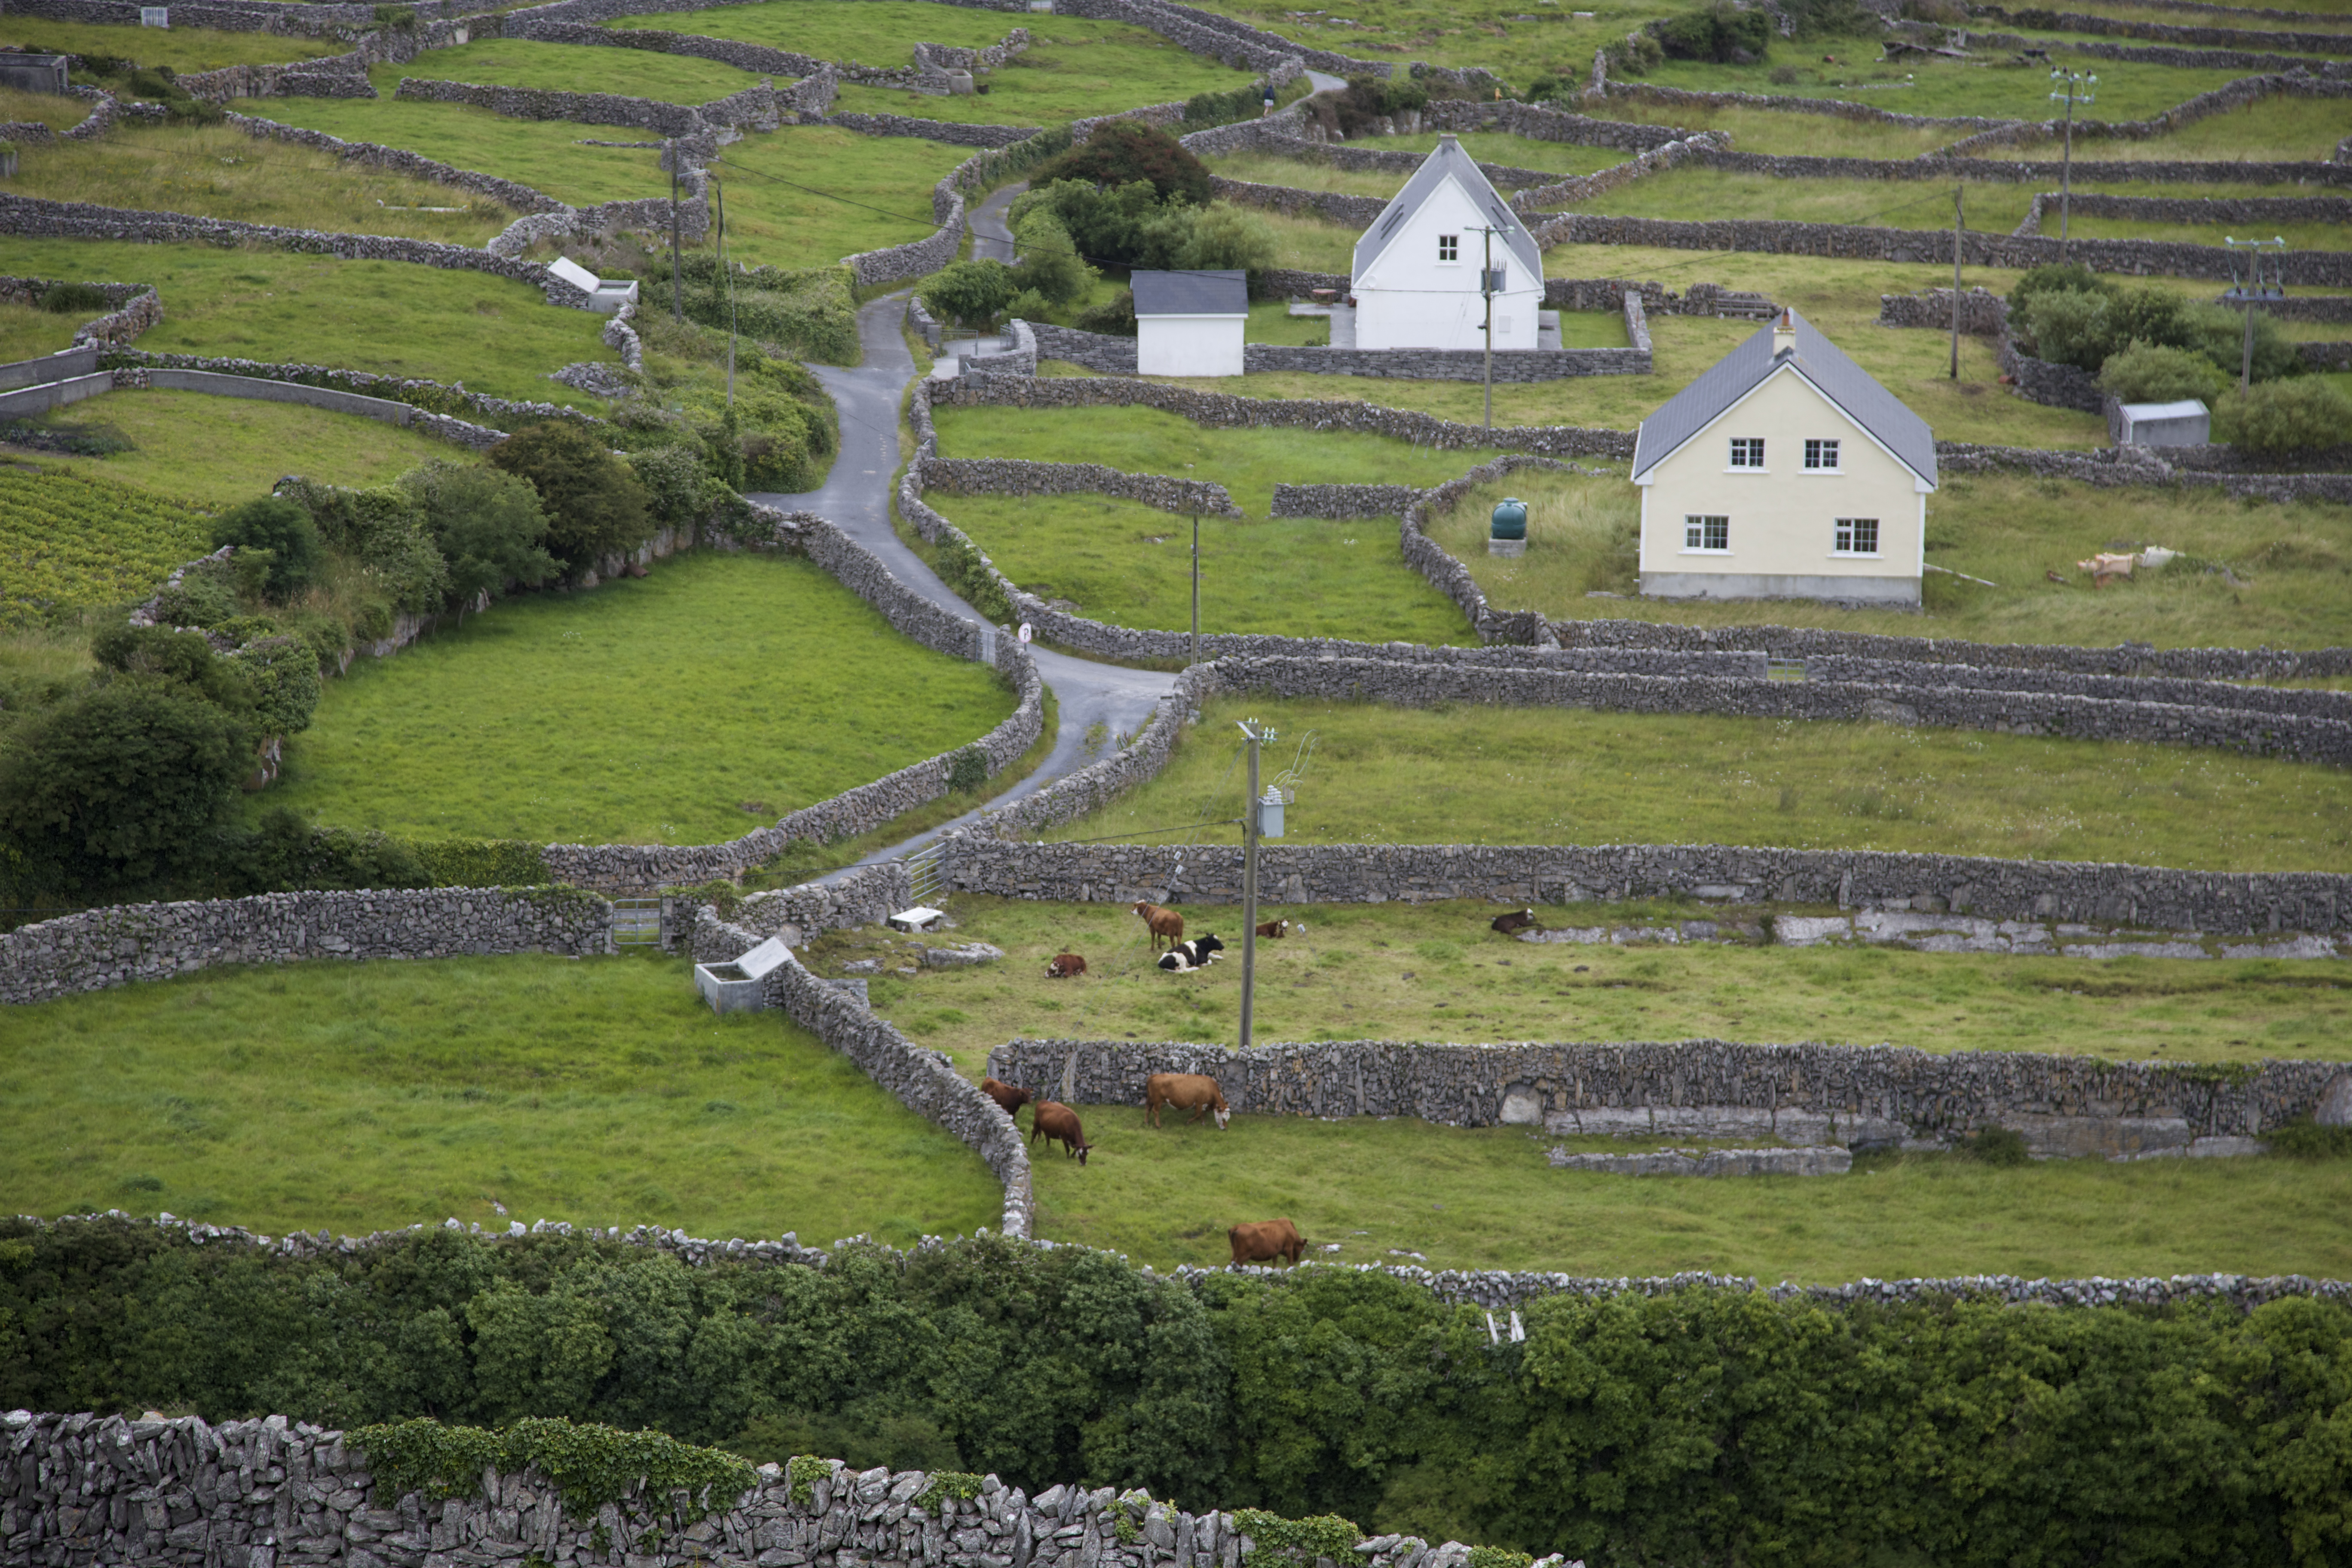 STREETS OF INISHEER